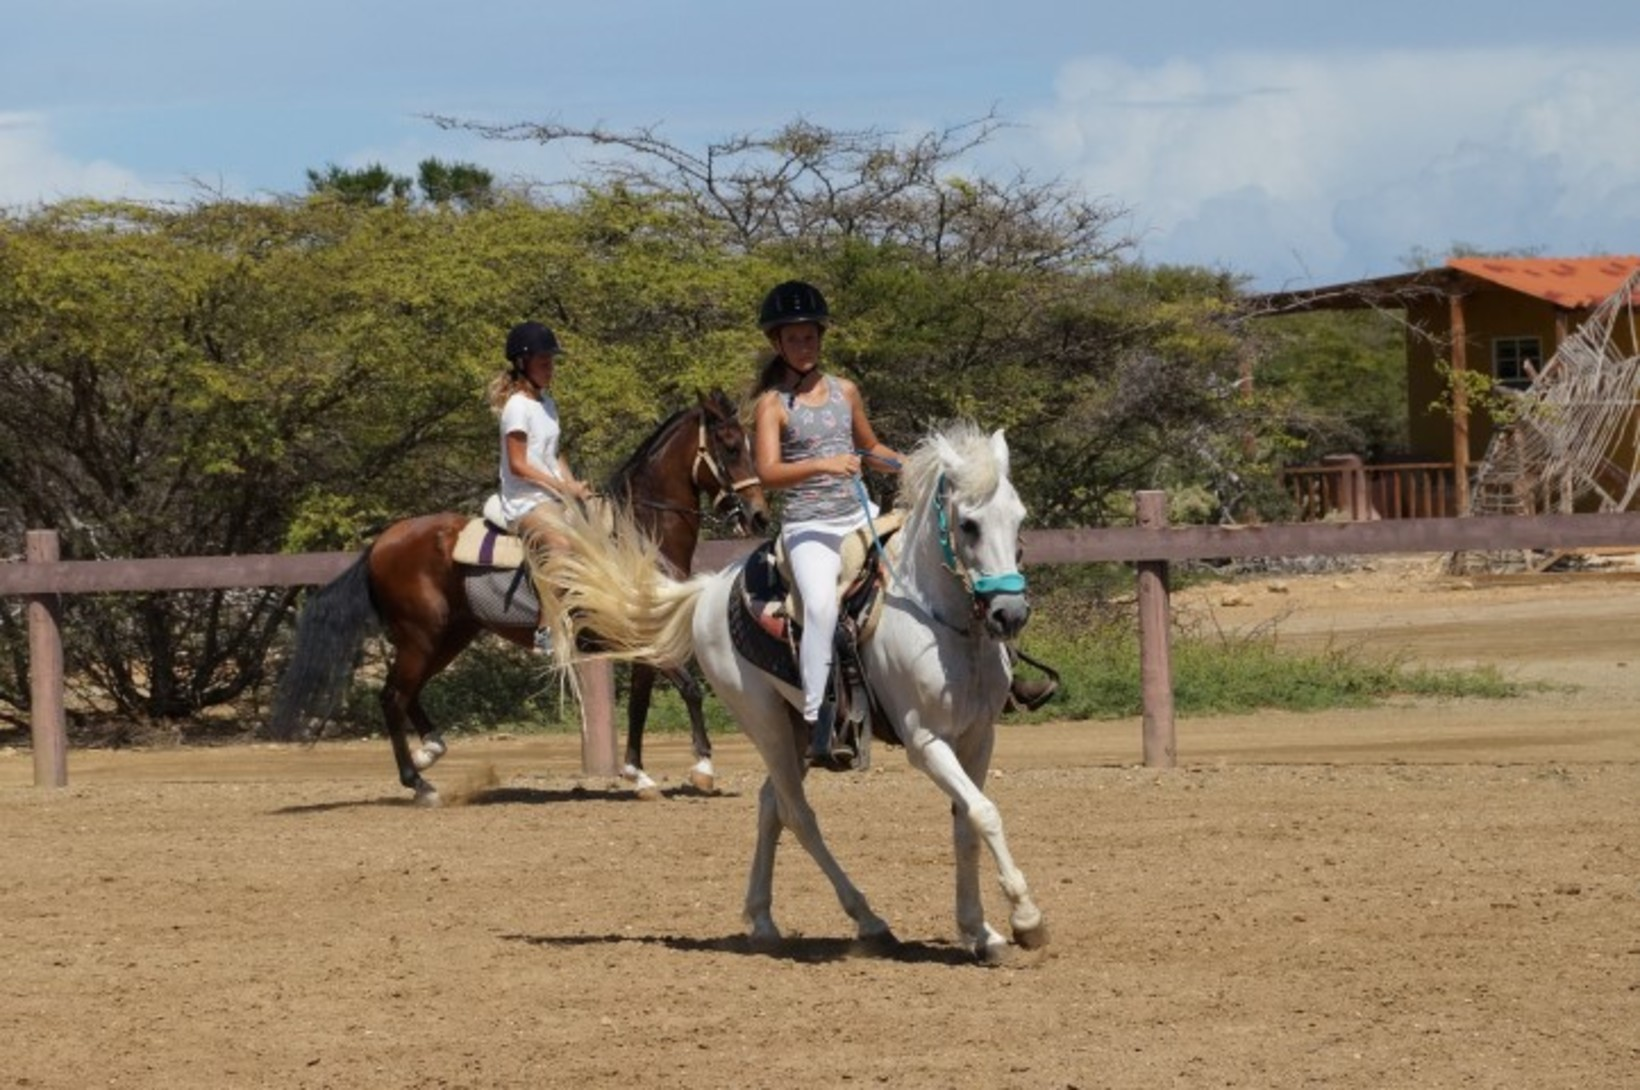 How can you learn horse riding